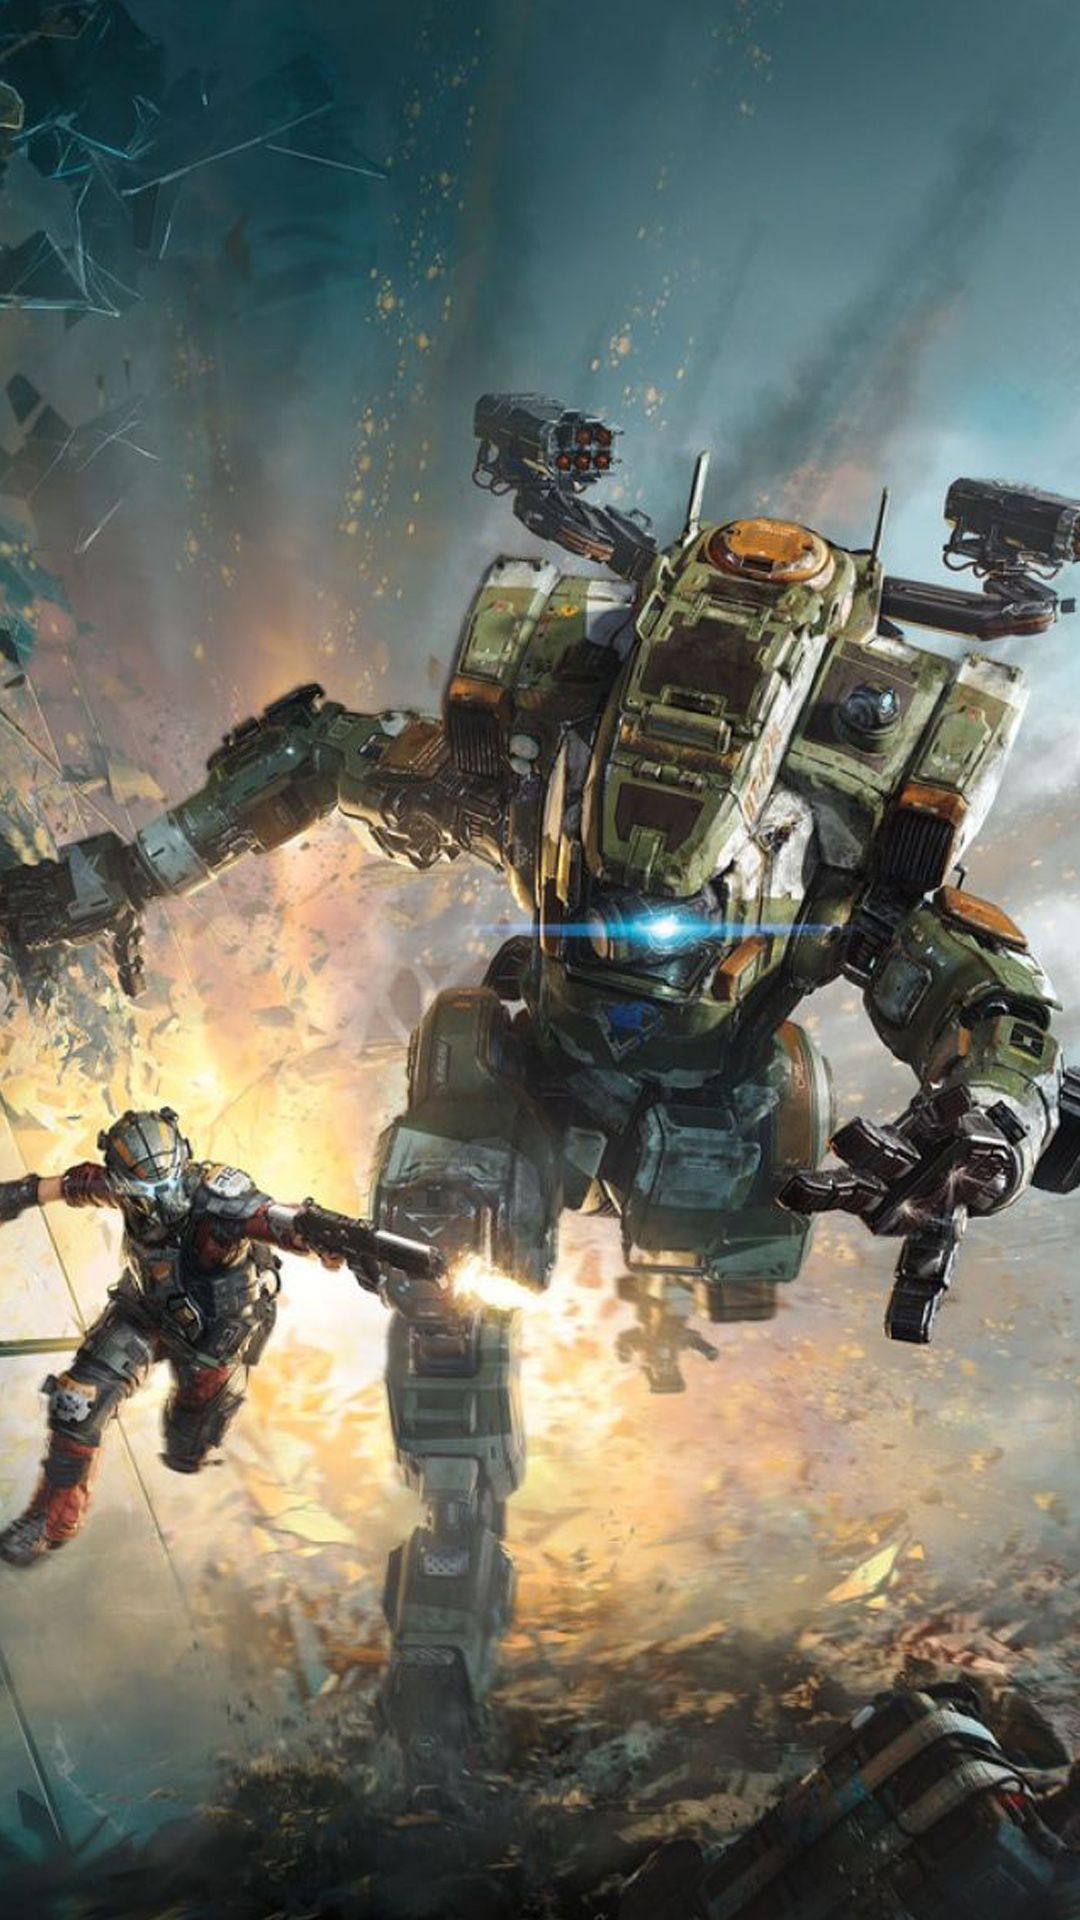 titanfall 2 wallpaper iphone se | titaneers | pinterest | wallpaper